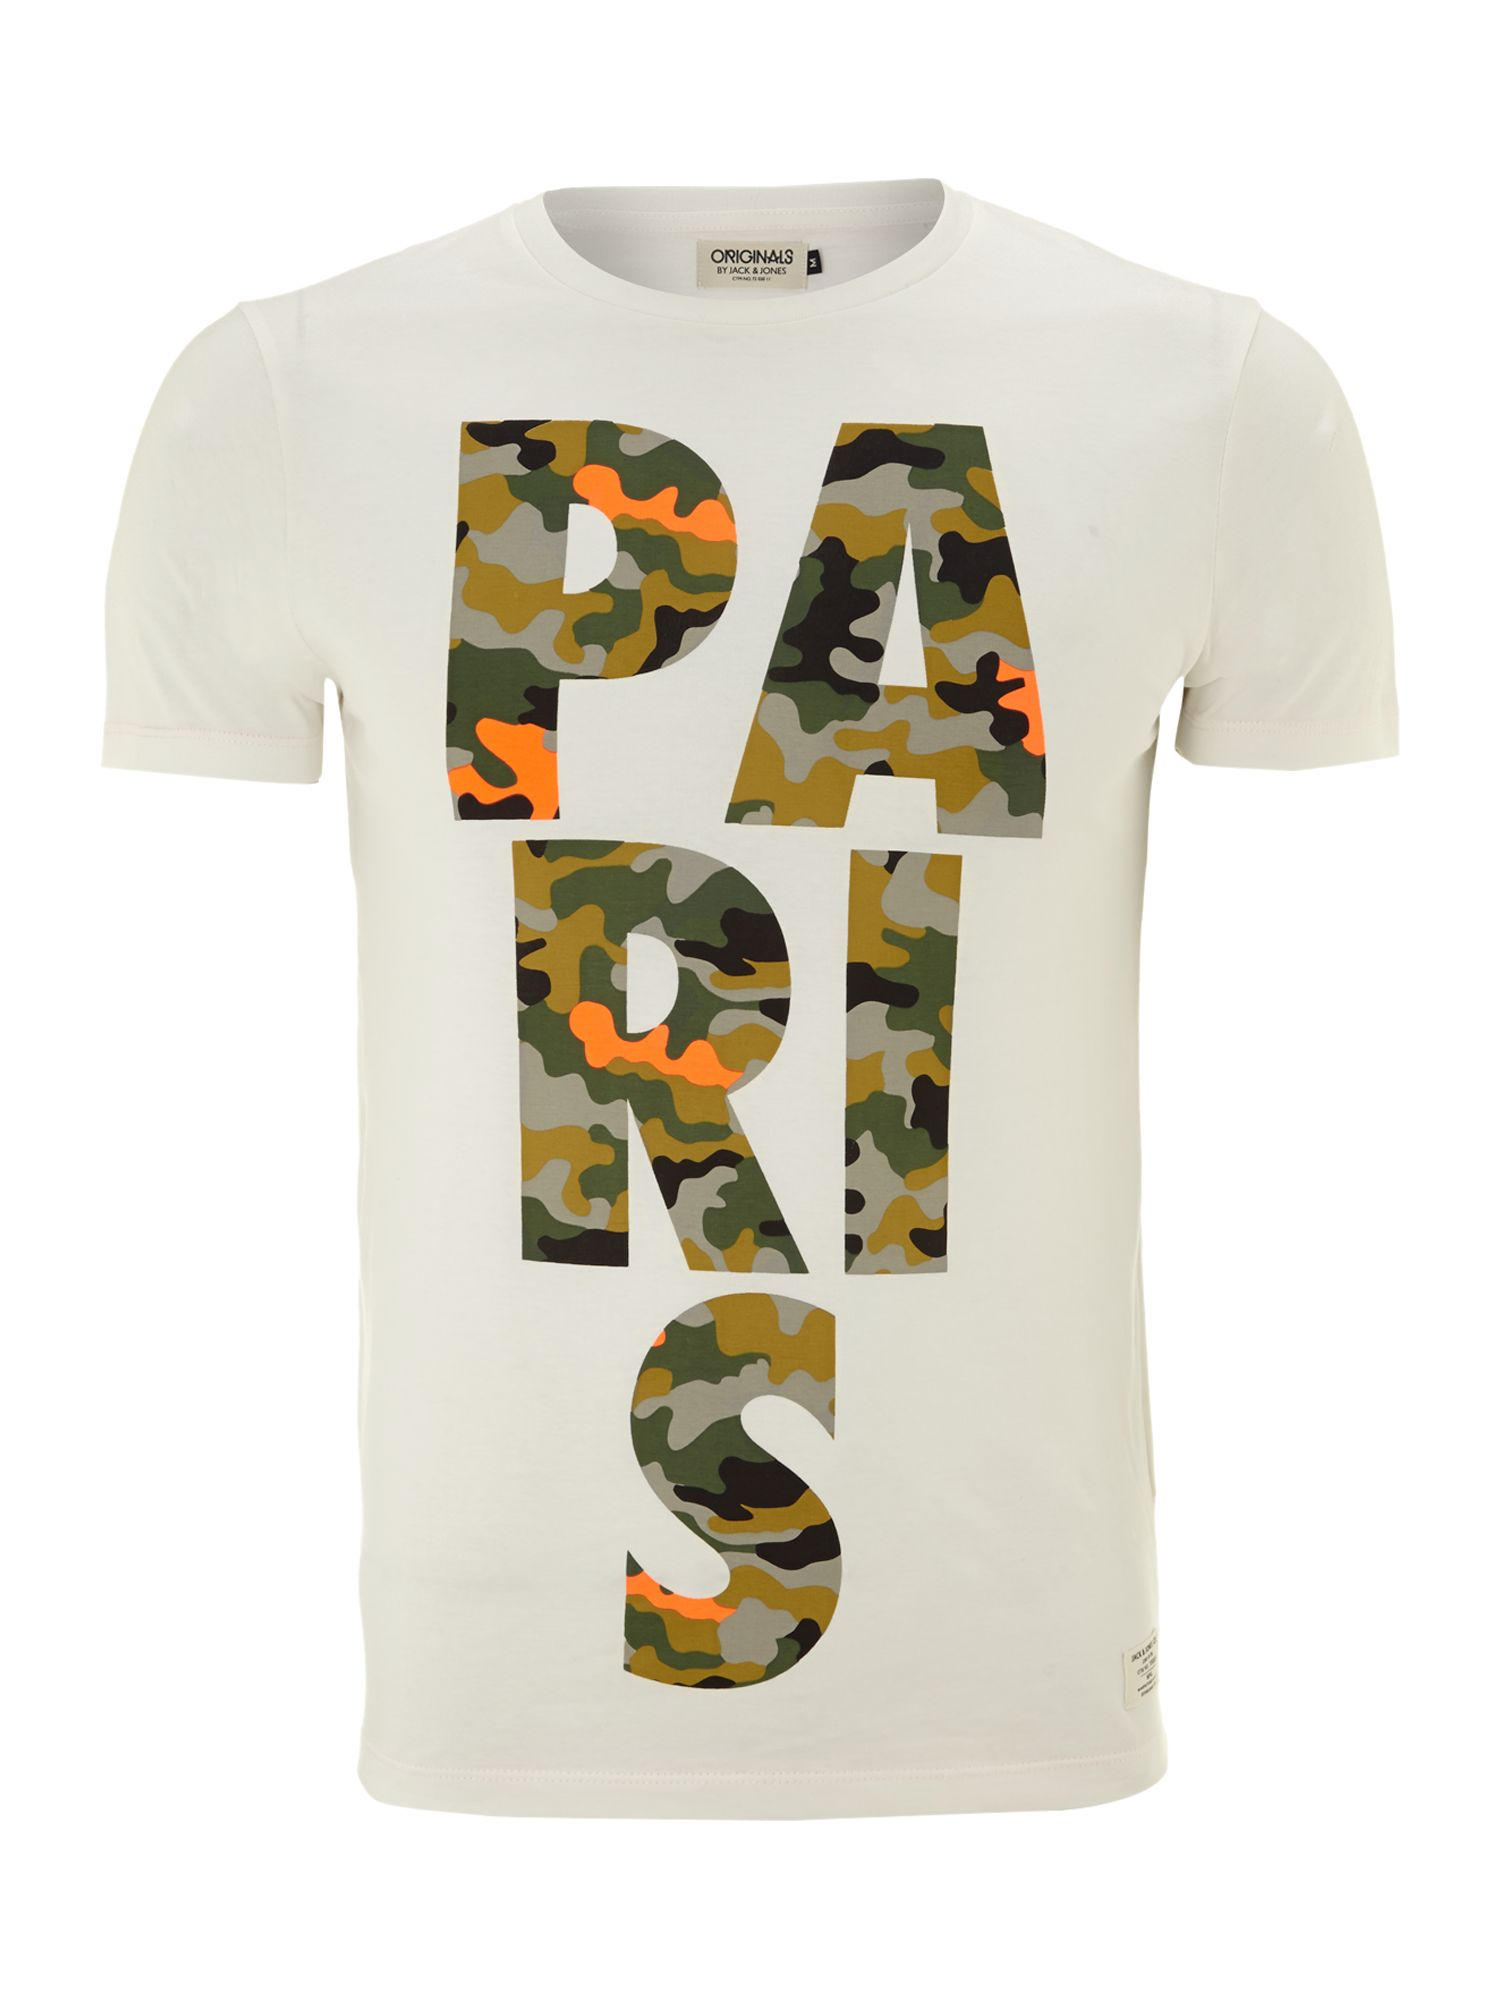 Camoflage Paris graphic T-shirt